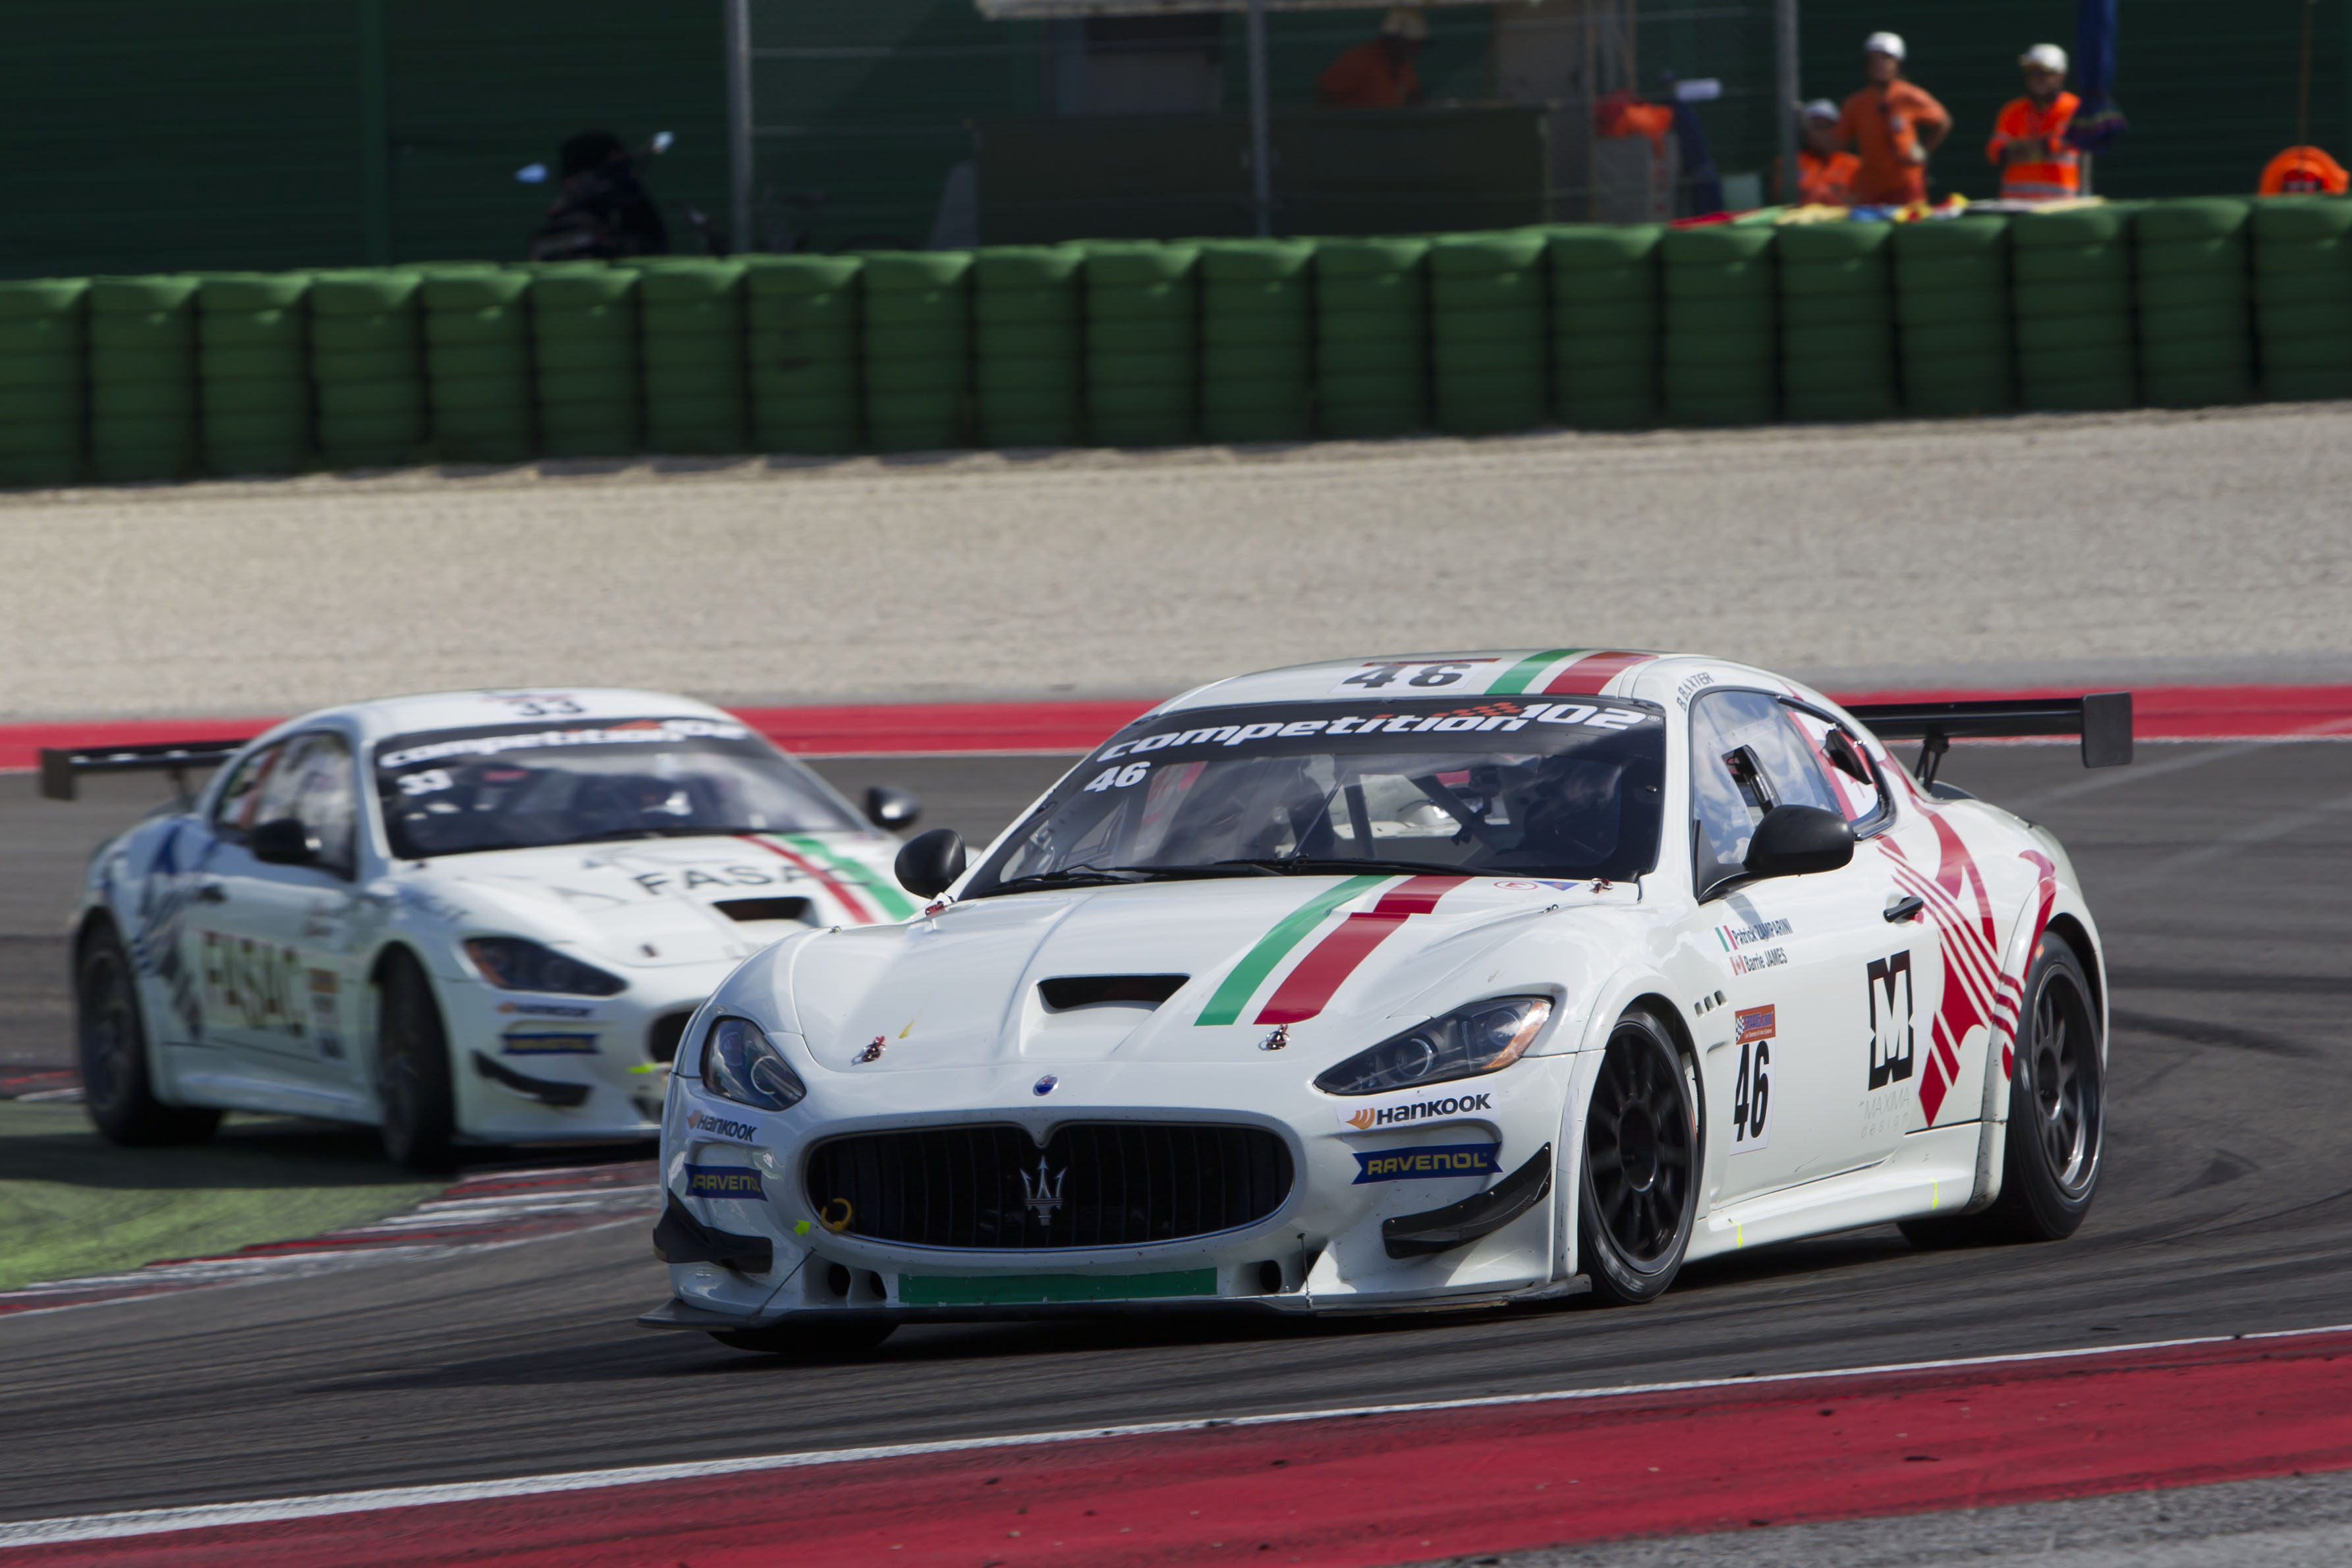 Maserati GT protagoniste a Misano